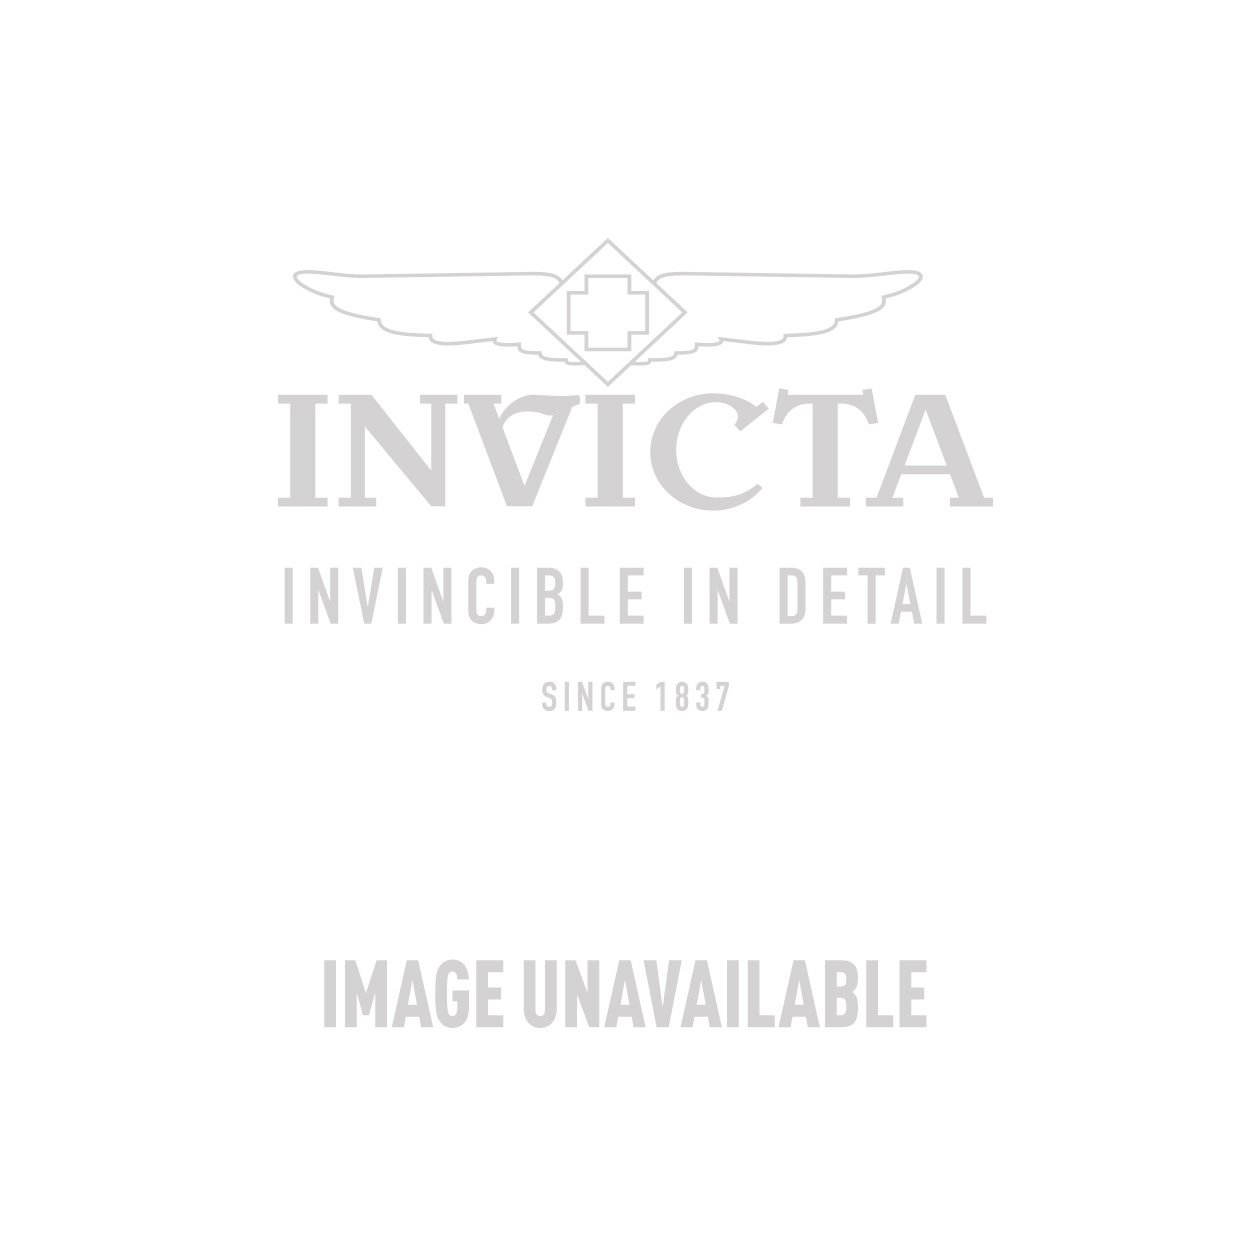 Invicta Excursion Swiss Made Quartz Watch - Stainless Steel case with Steel, Blue tone Stainless Steel, Polyurethane band - Model 6253